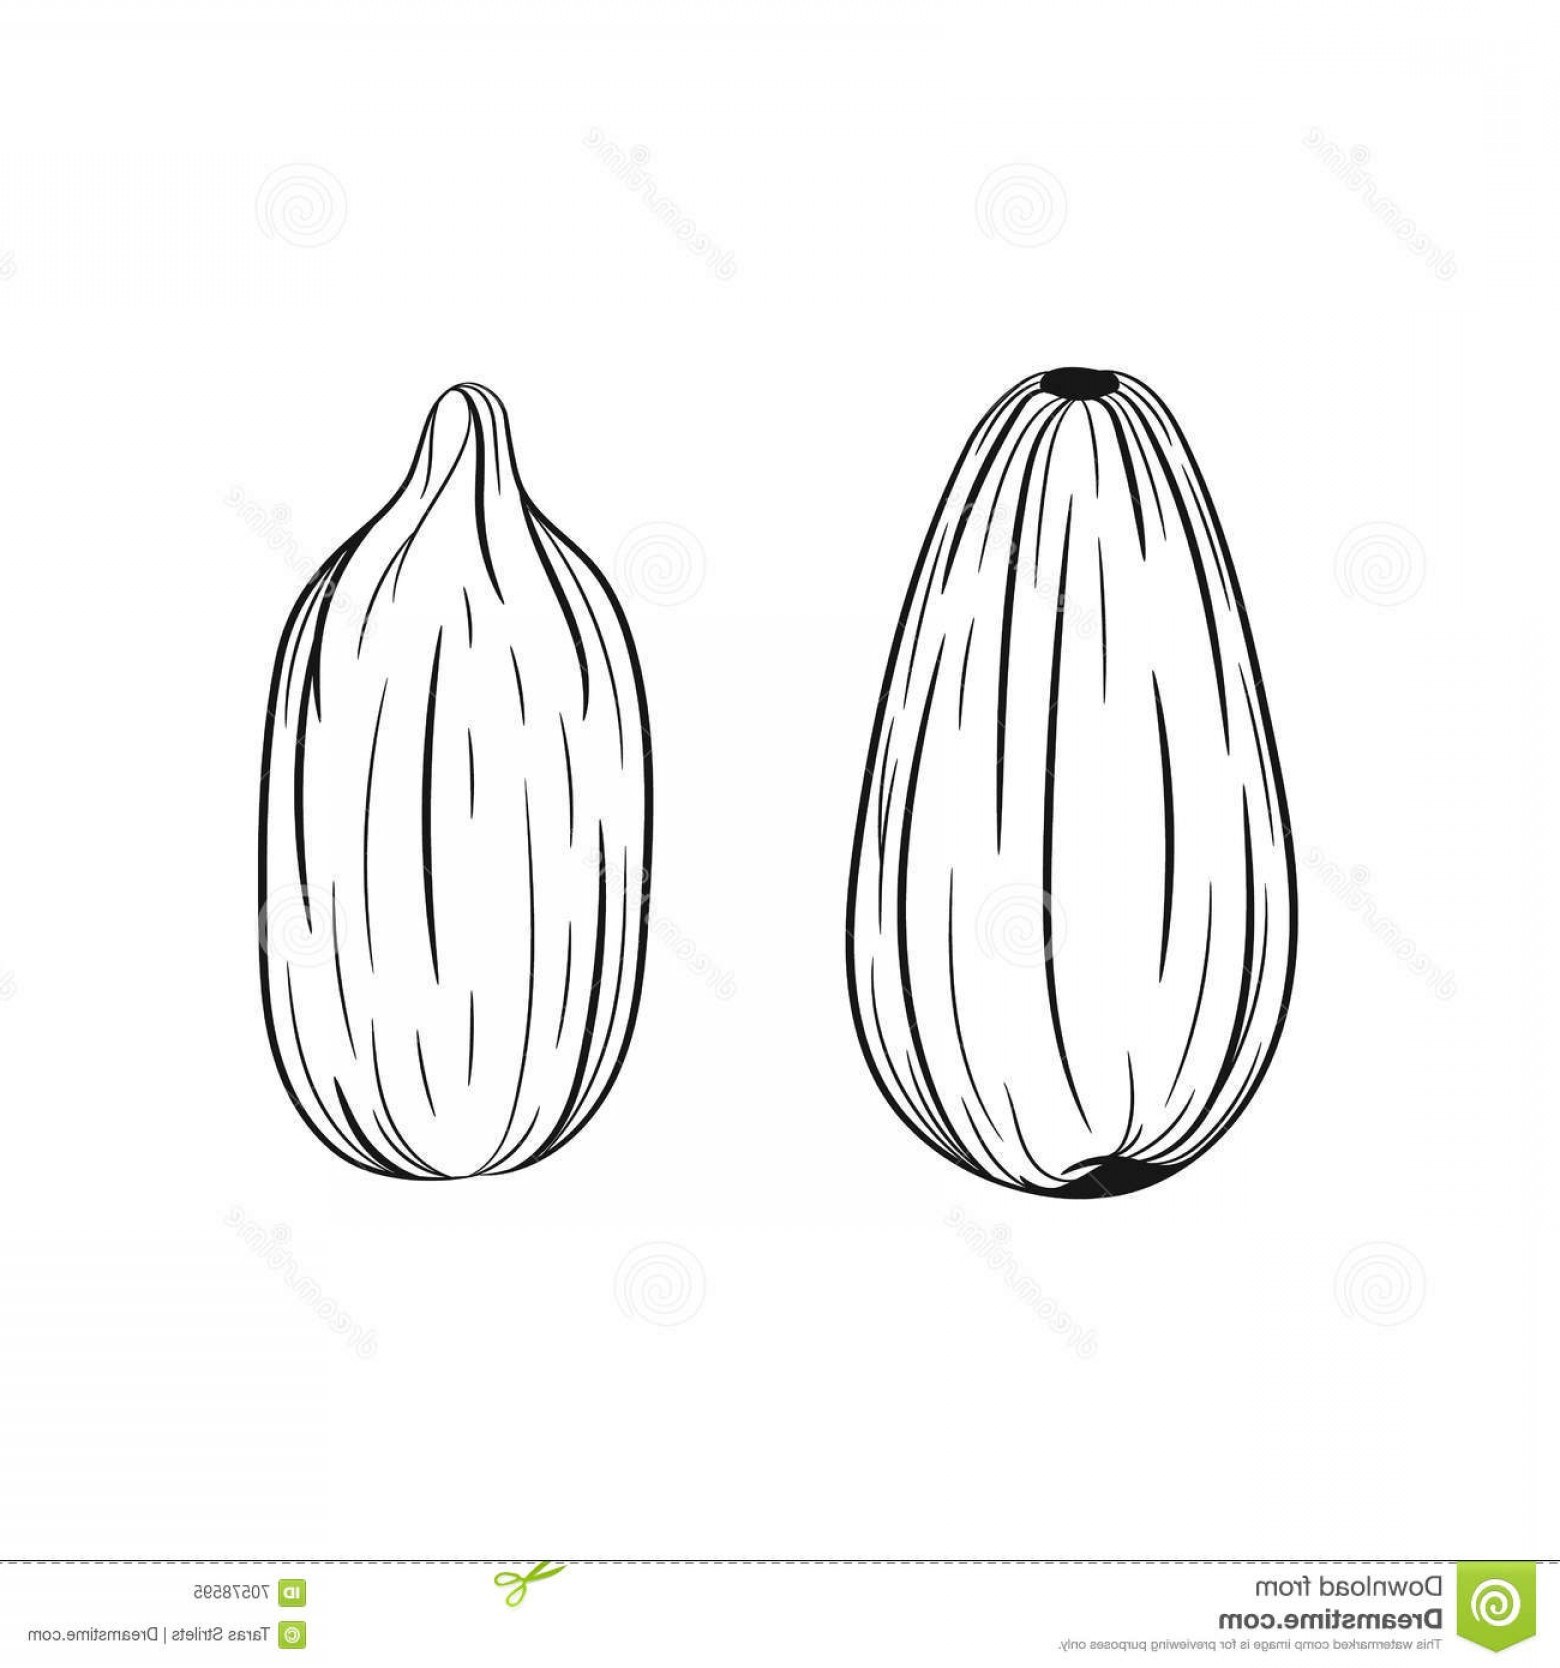 Vector Black And White Sunflower Seed: Stock Illustration Hand Drawn Sunflower Seeds Sketches Vector Illustration Isolated White Background Stock Vector Image